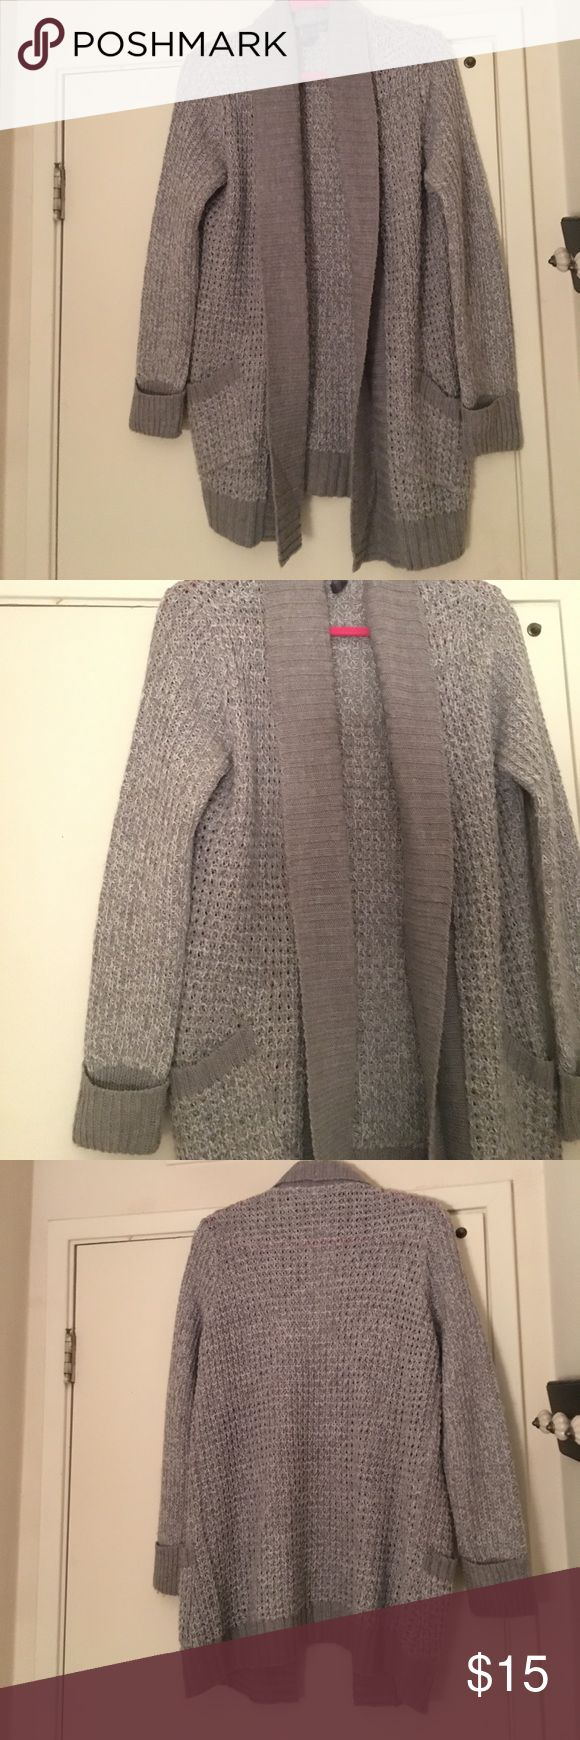 MOVING SALE! Cozy grey cardigan Cozy grey cardigan from francescas collections. Gently worn few times, great condition Francesca's Collections Sweaters Cardigans